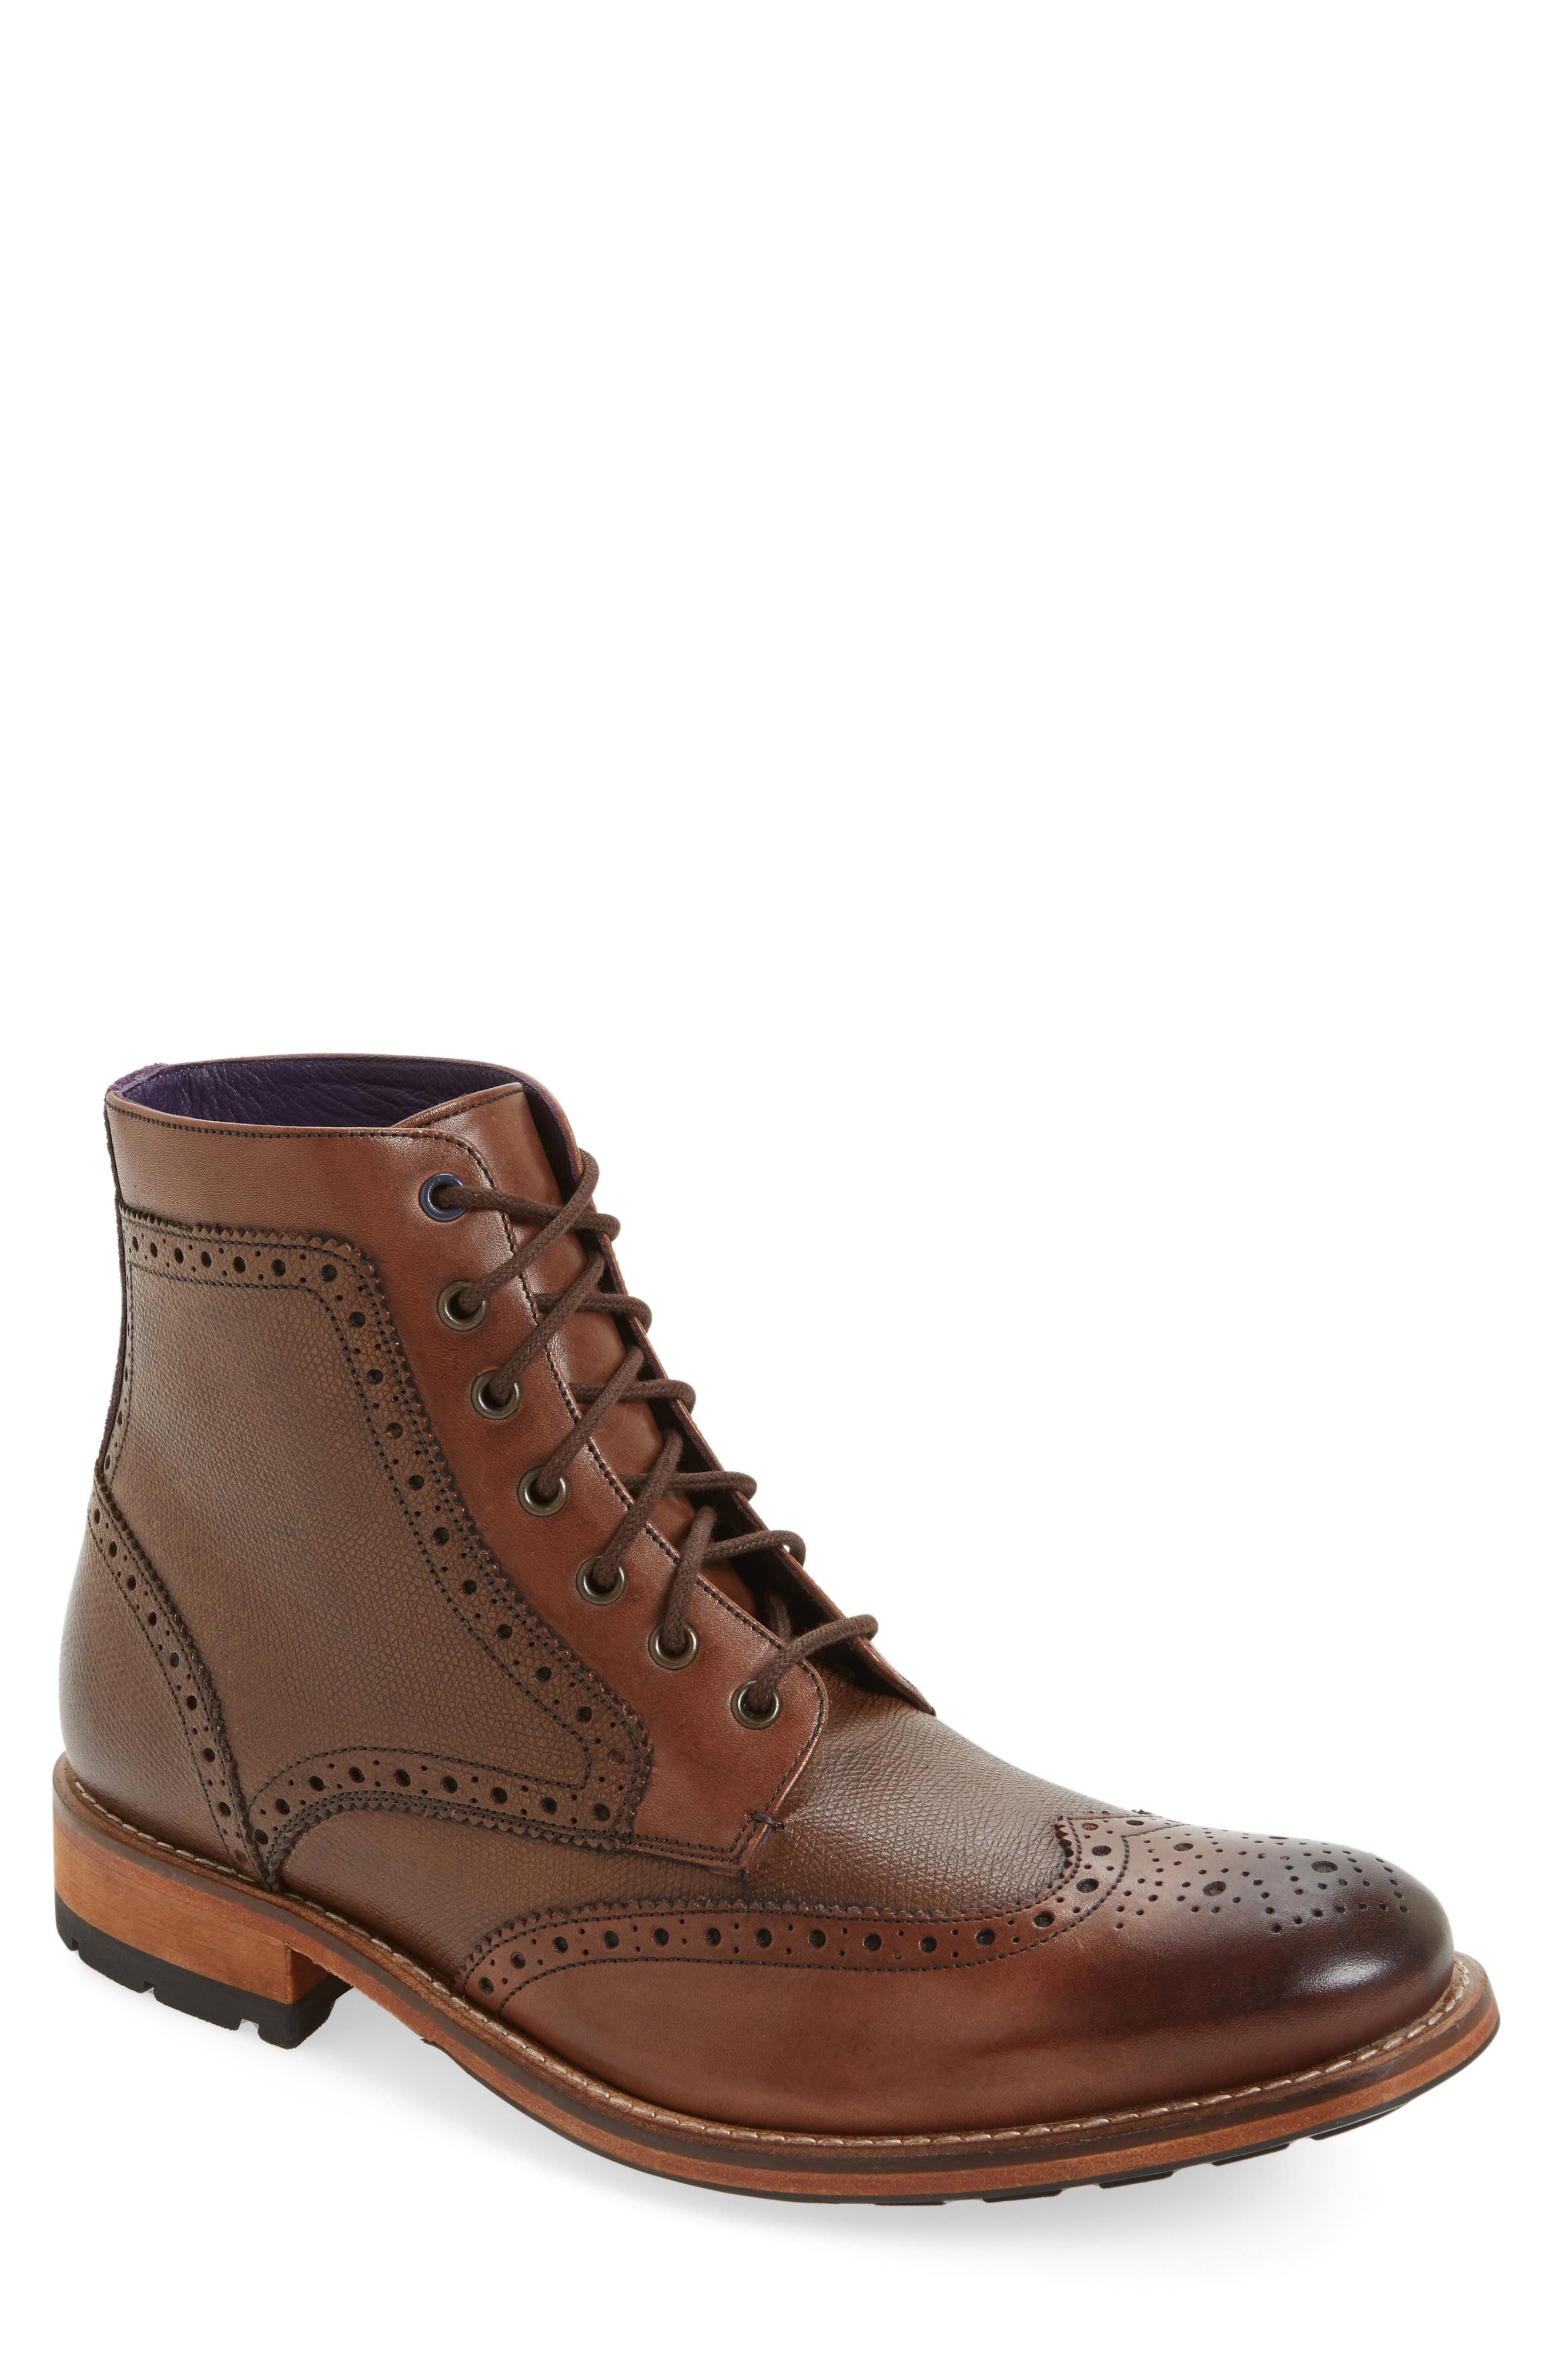 'Sealls 3' Wingtip Boot,                         Main,                         color, Brown Leather